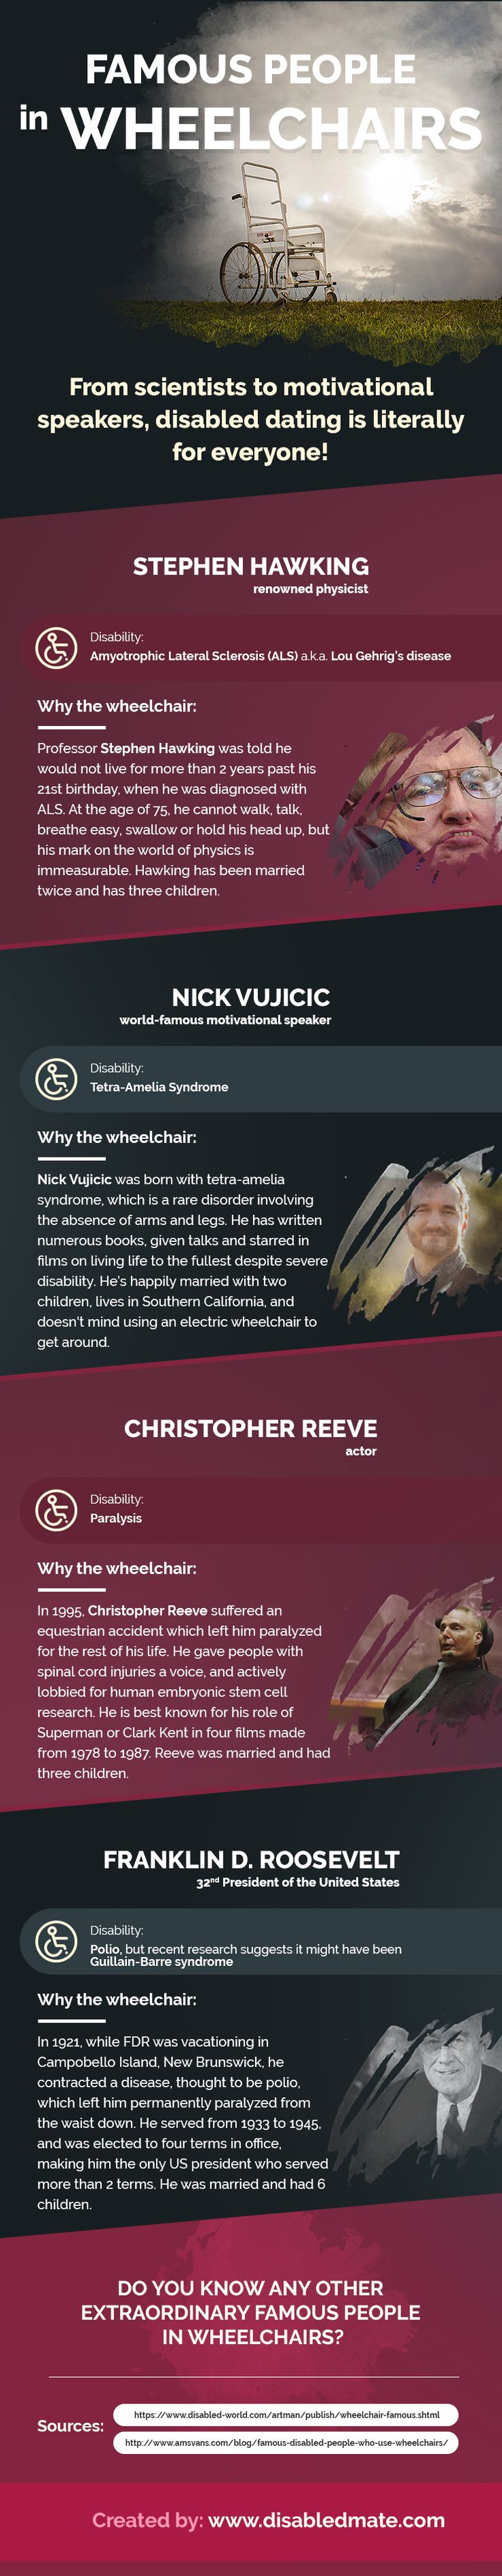 Famous People in Wheelchairs